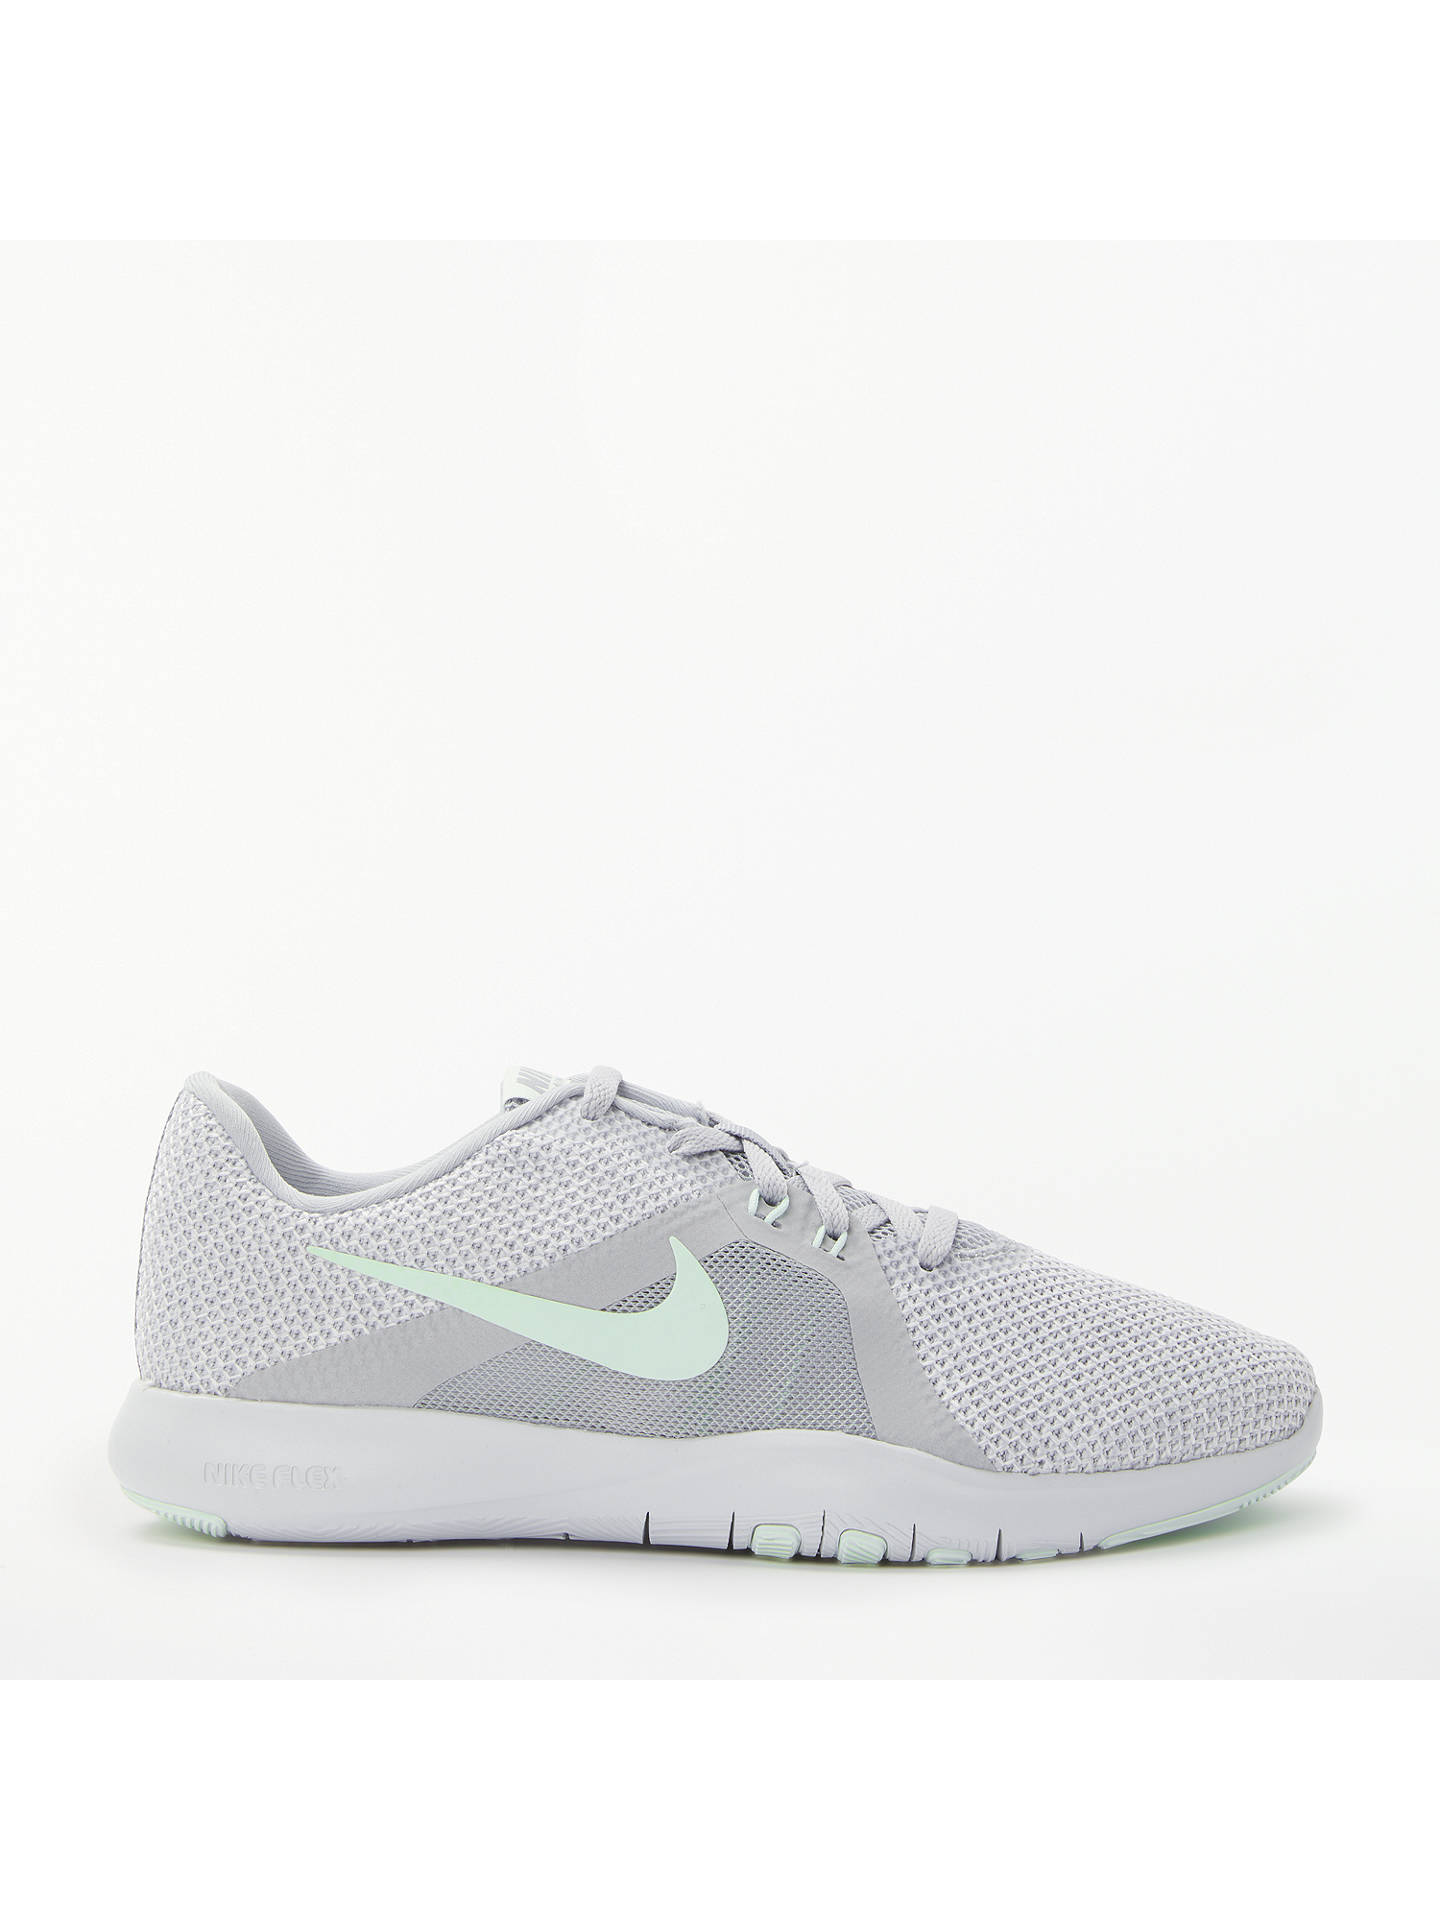 c4b74e6a2615 Buy Nike Flex TR 8 Women s Training Shoes